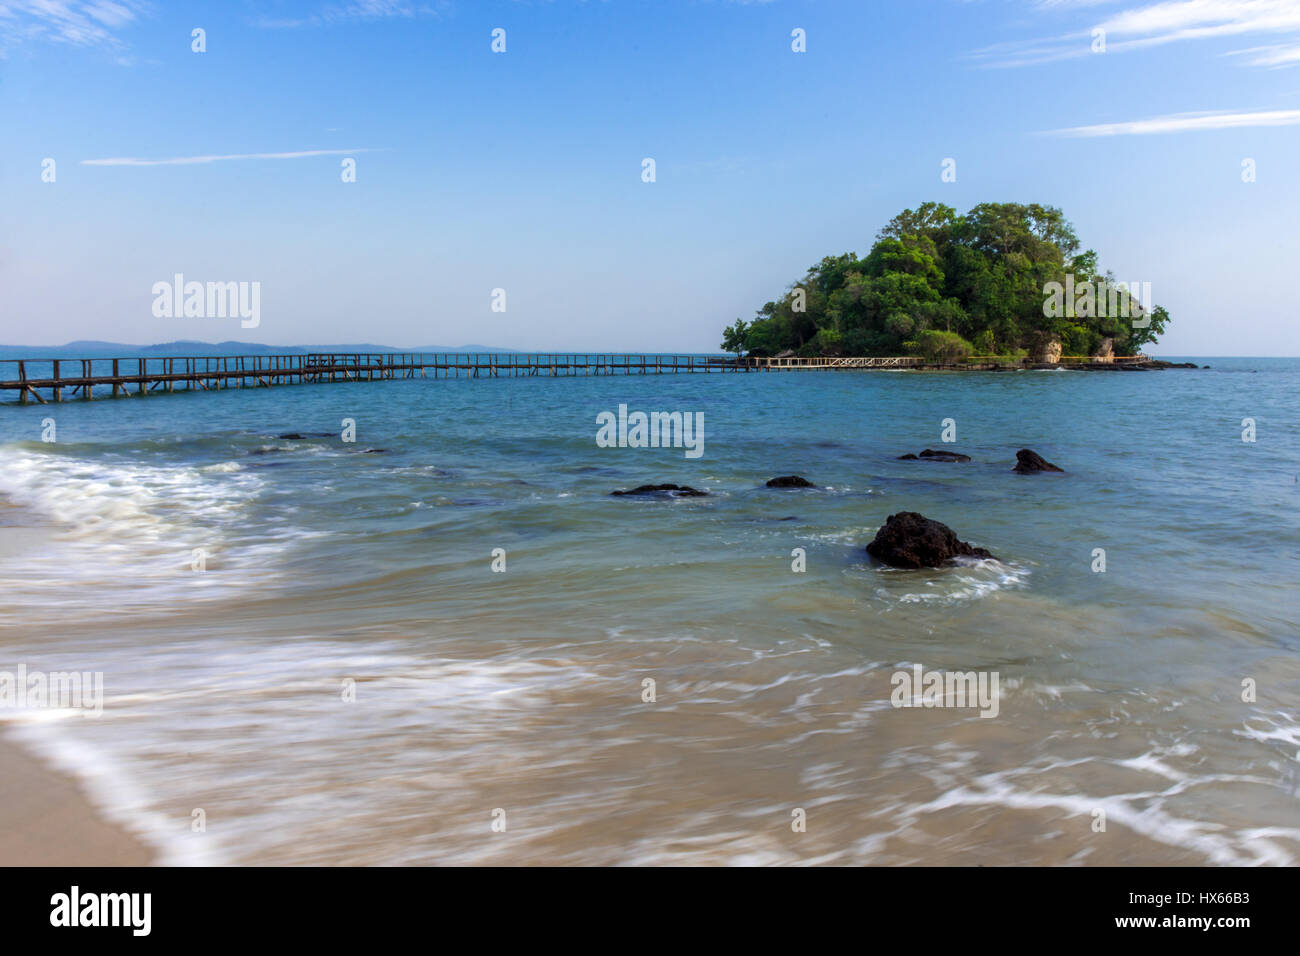 A Long exposure of Thinker's Island, Cambodia with its wooden walkway to it. - Stock Image